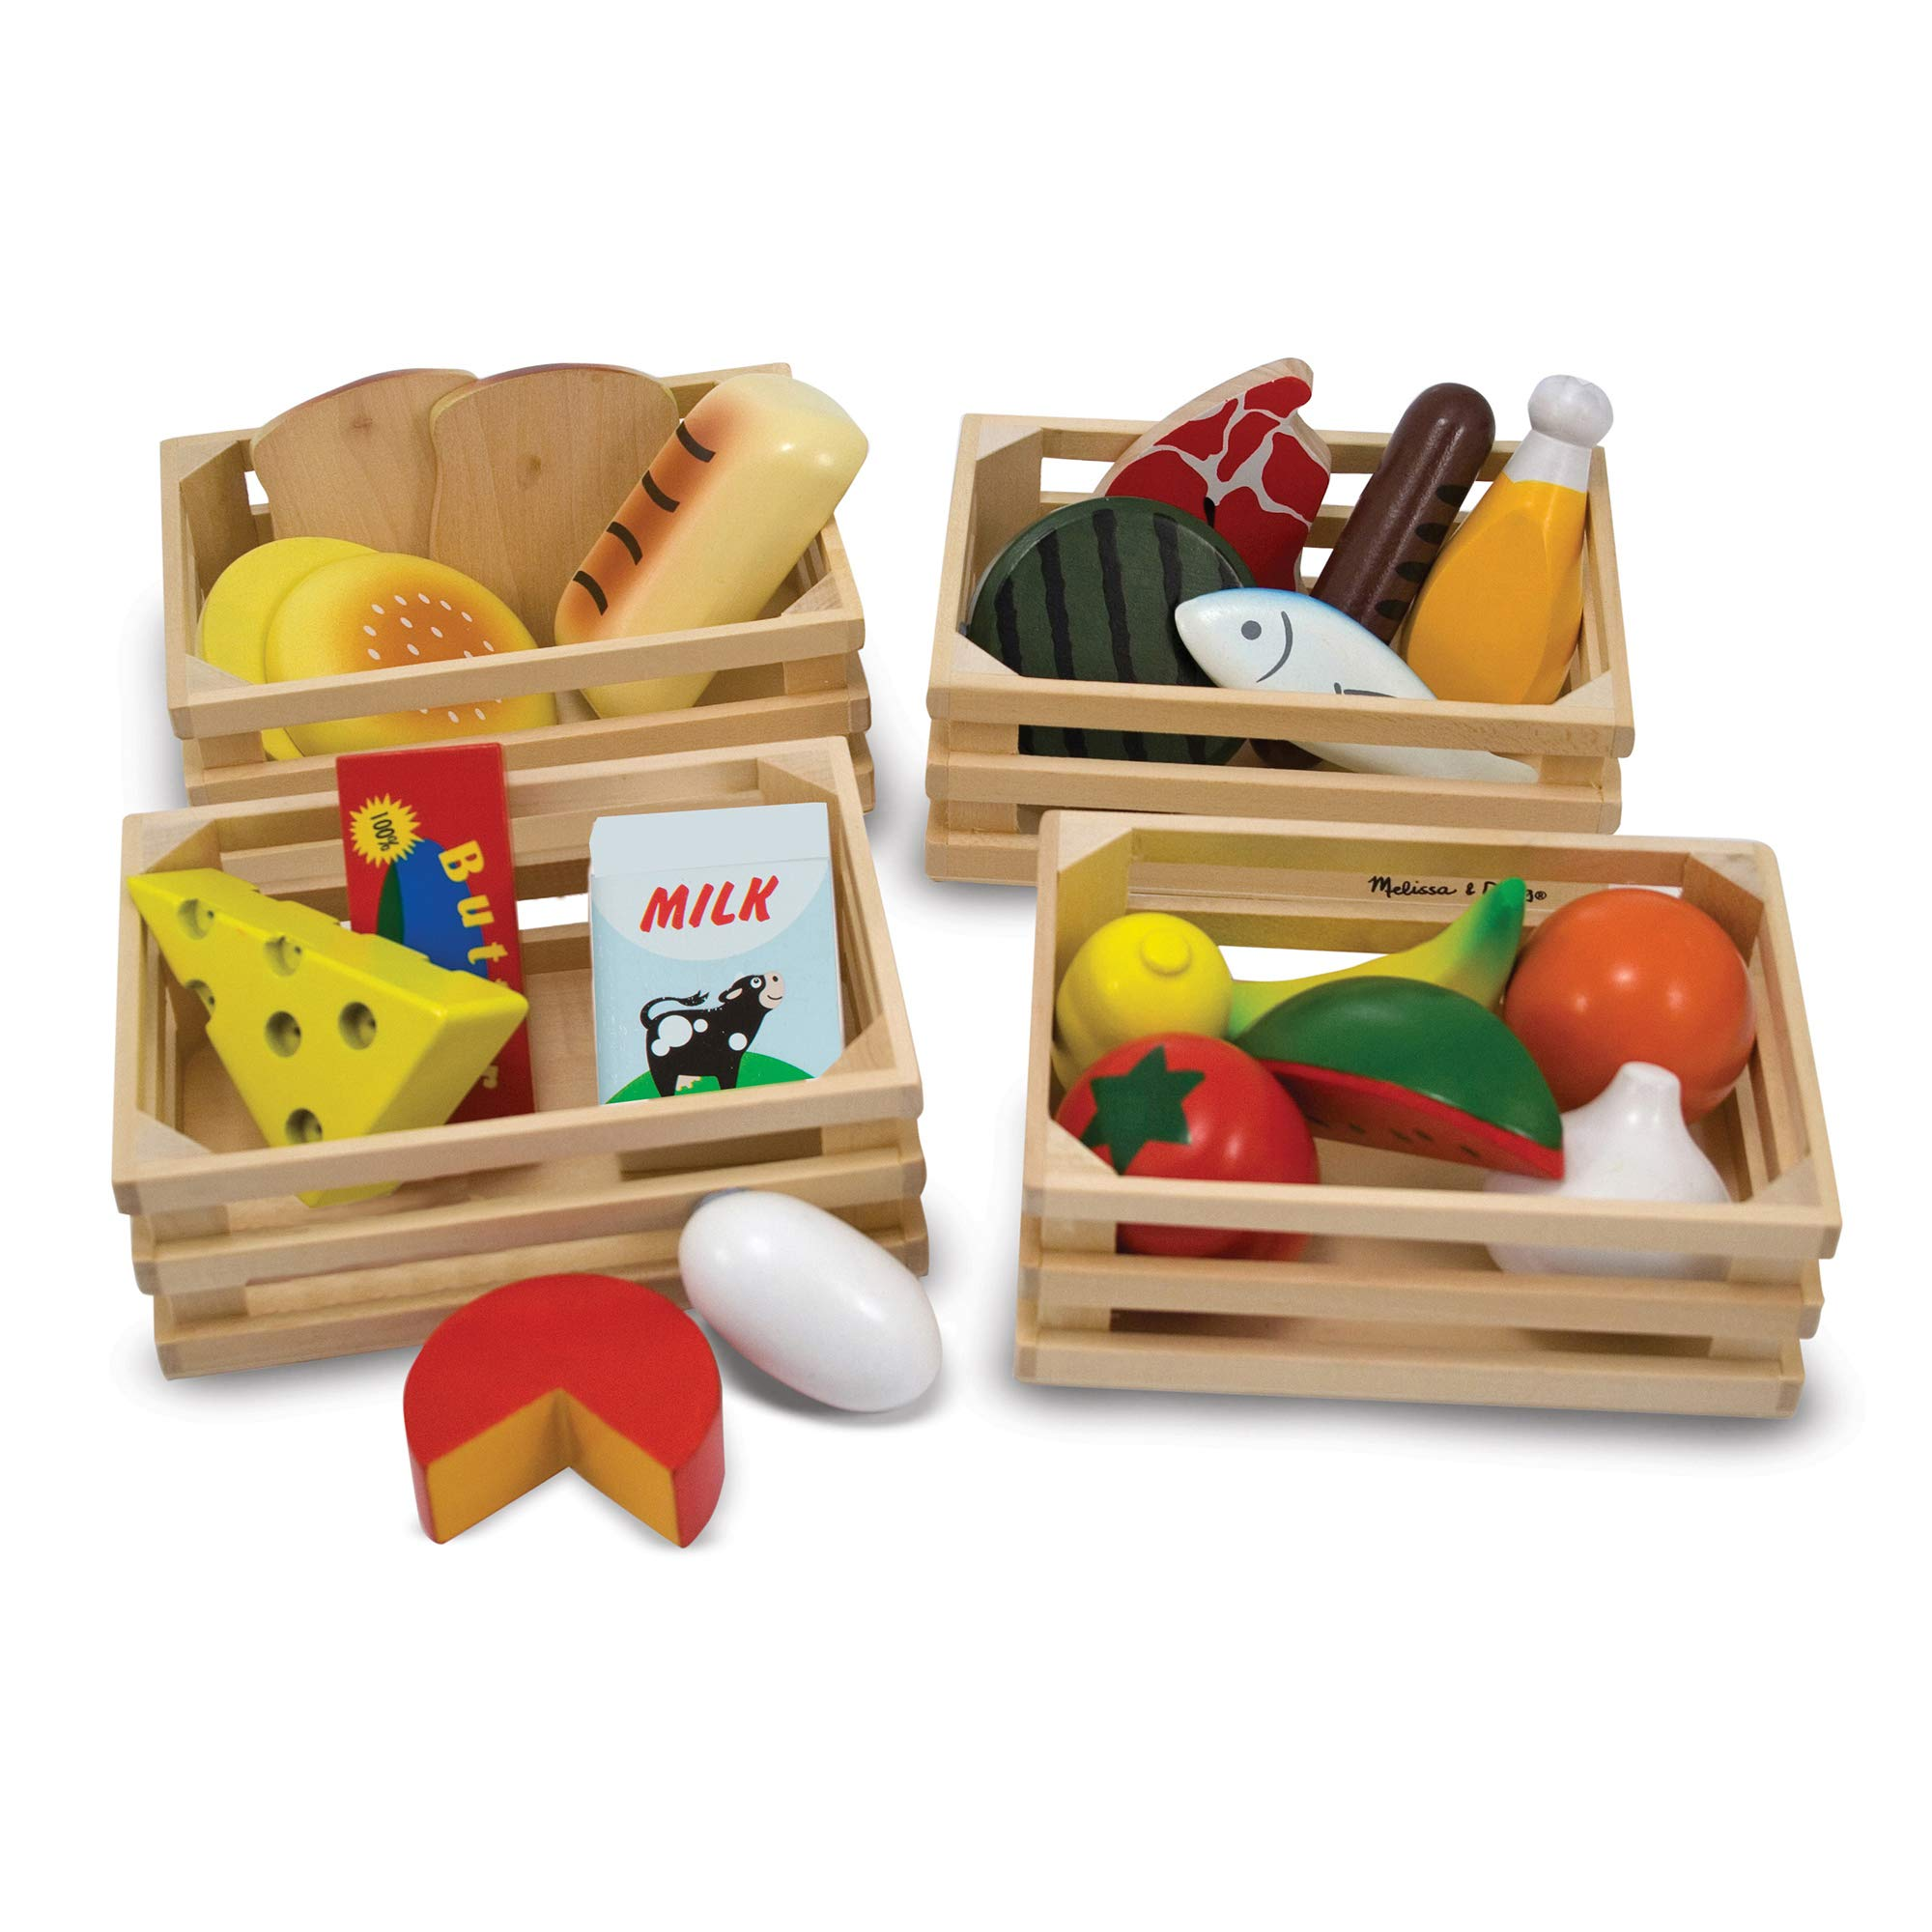 Melissa & Doug Food Groups - Wooden Play Food (Pretend Play, 21 Hand-Painted Wooden Pieces and 4 Crates)